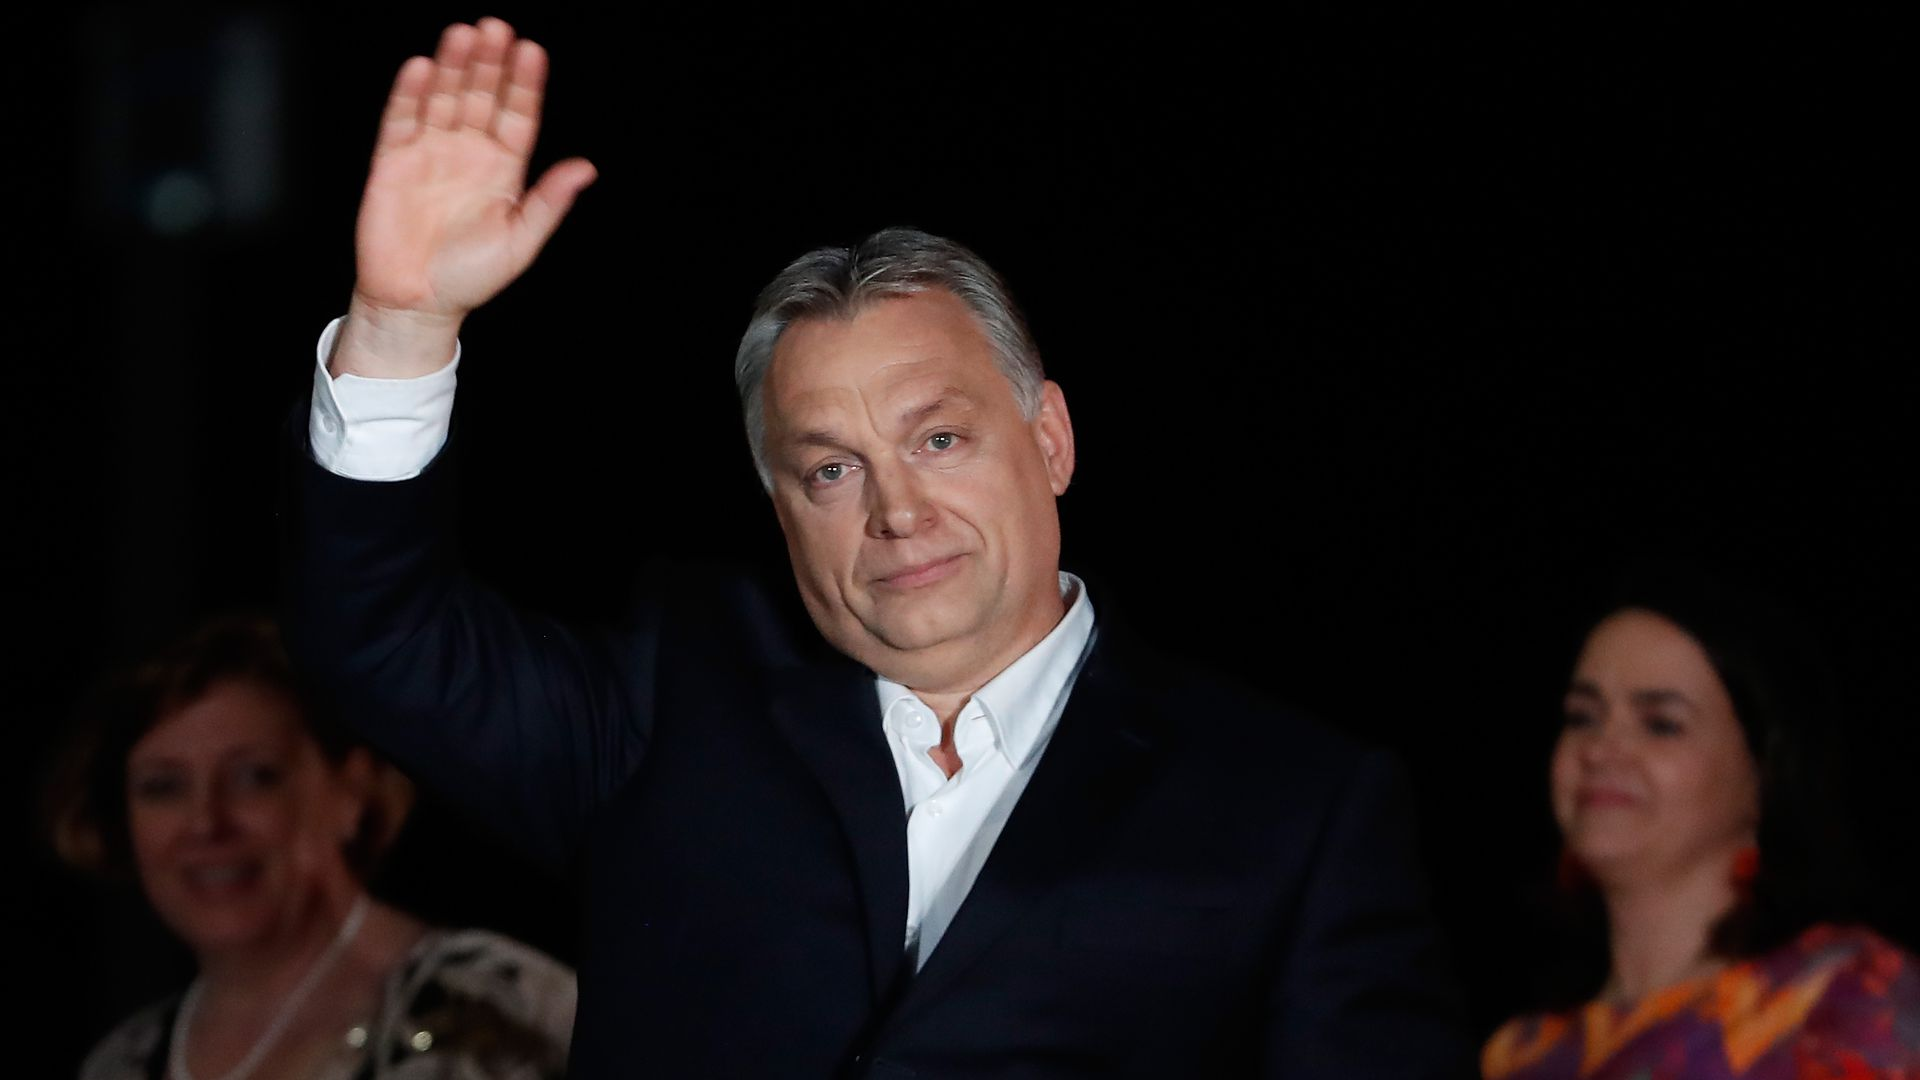 Viktor Orban waving to crowd of supporters